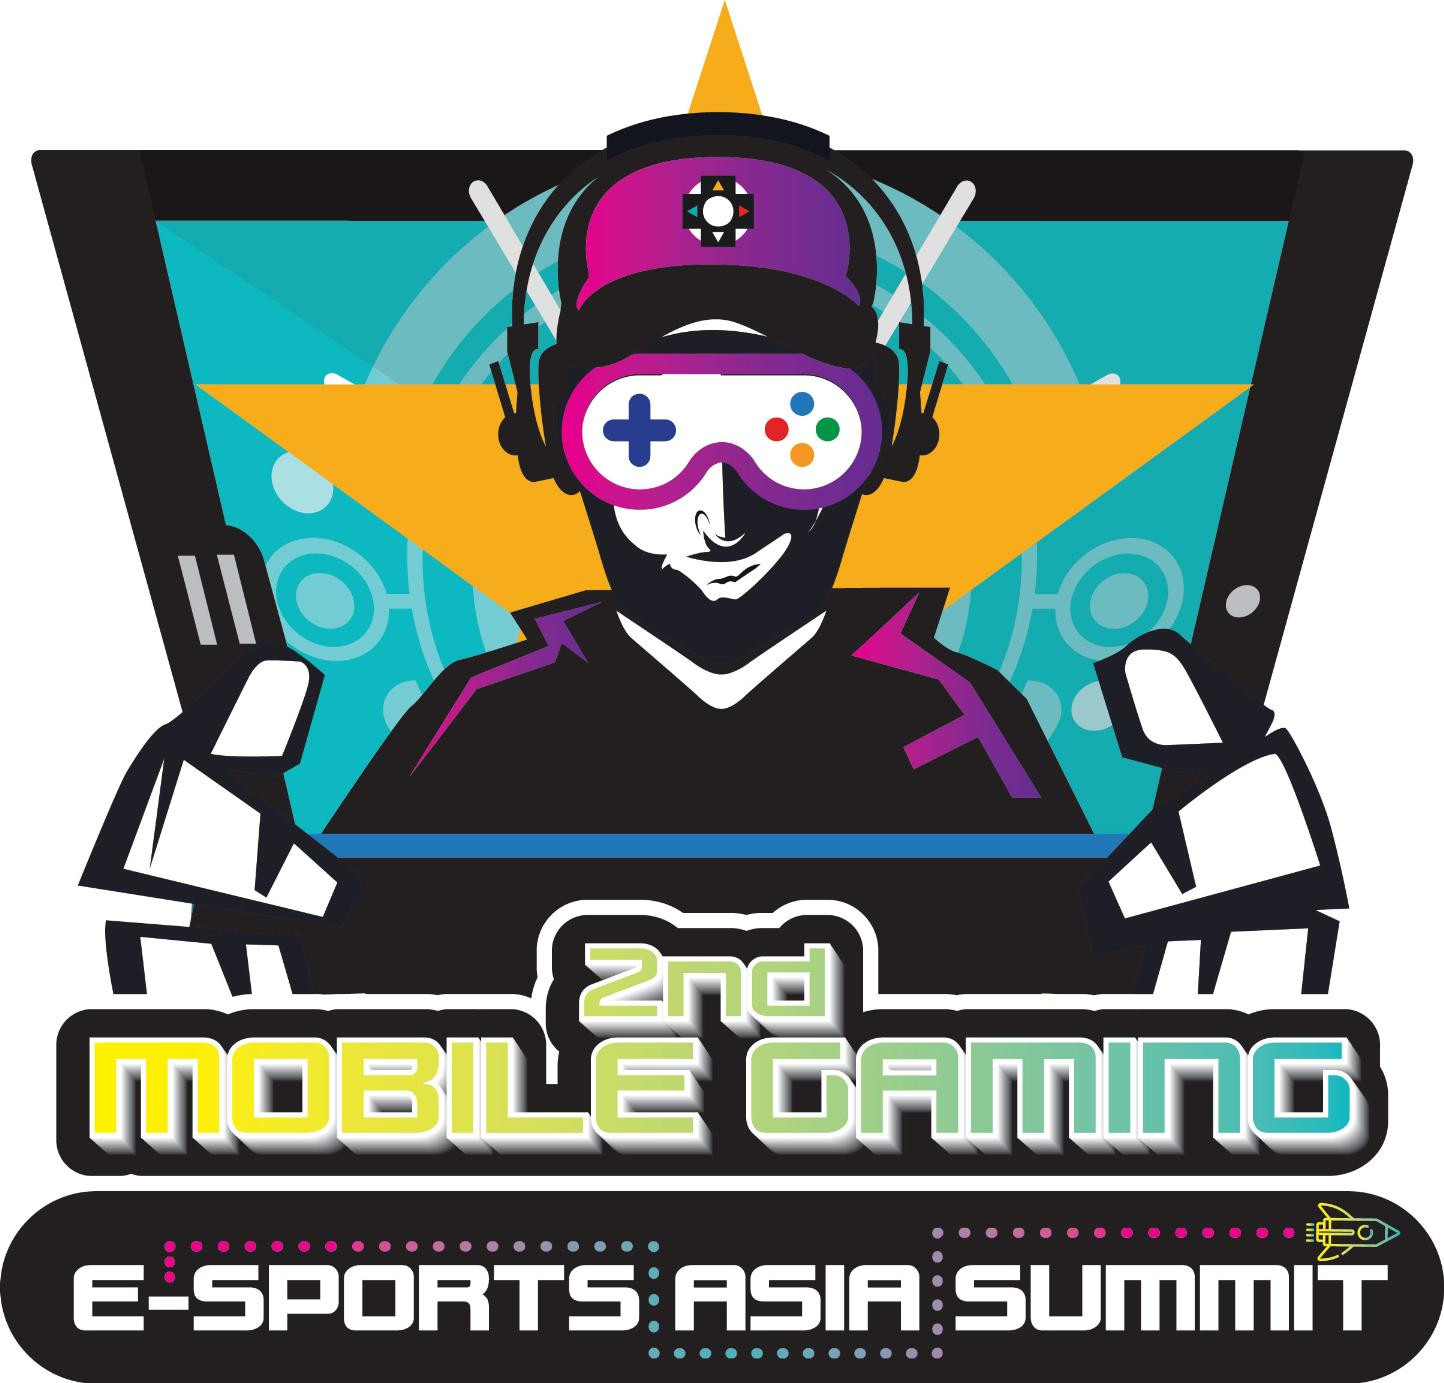 2nd Mobile Gaming Asia Summit